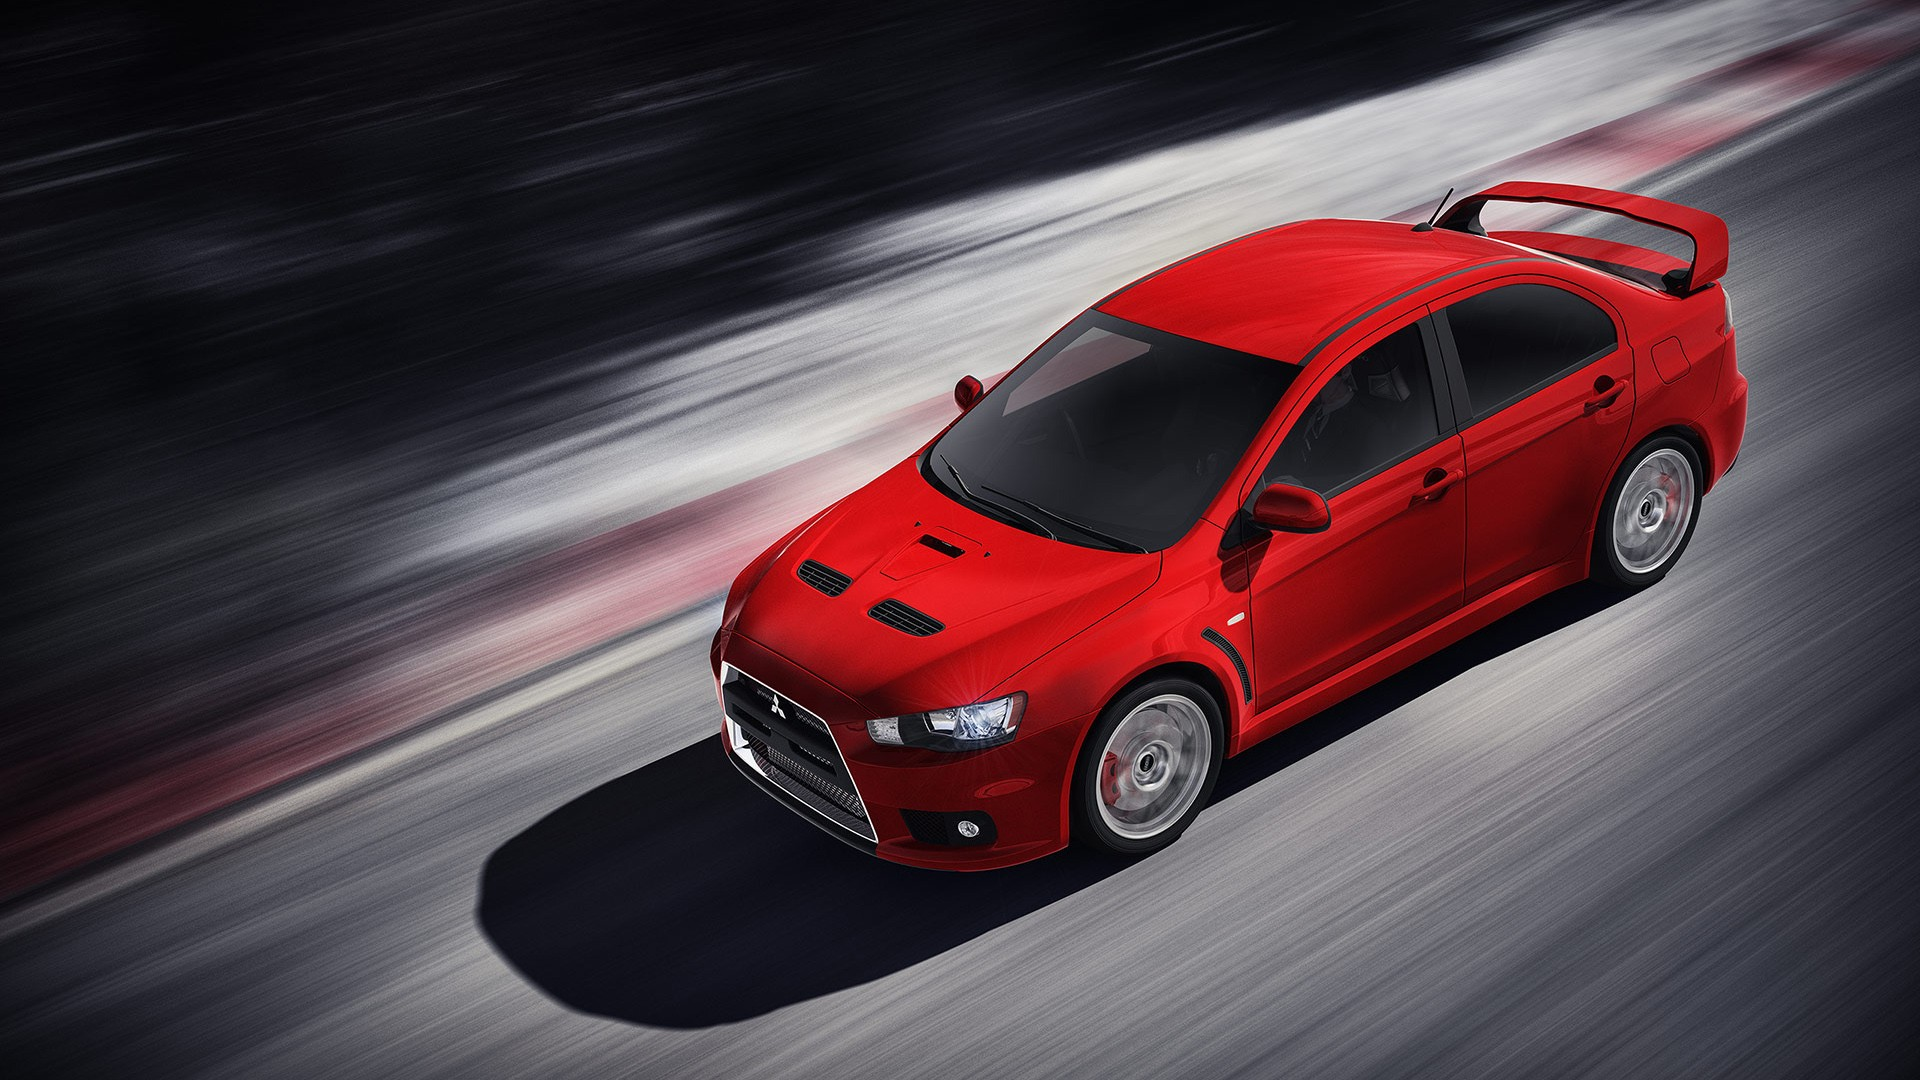 Lancer Evolution X Wallpaper HD Car Wallpapers ID 3374